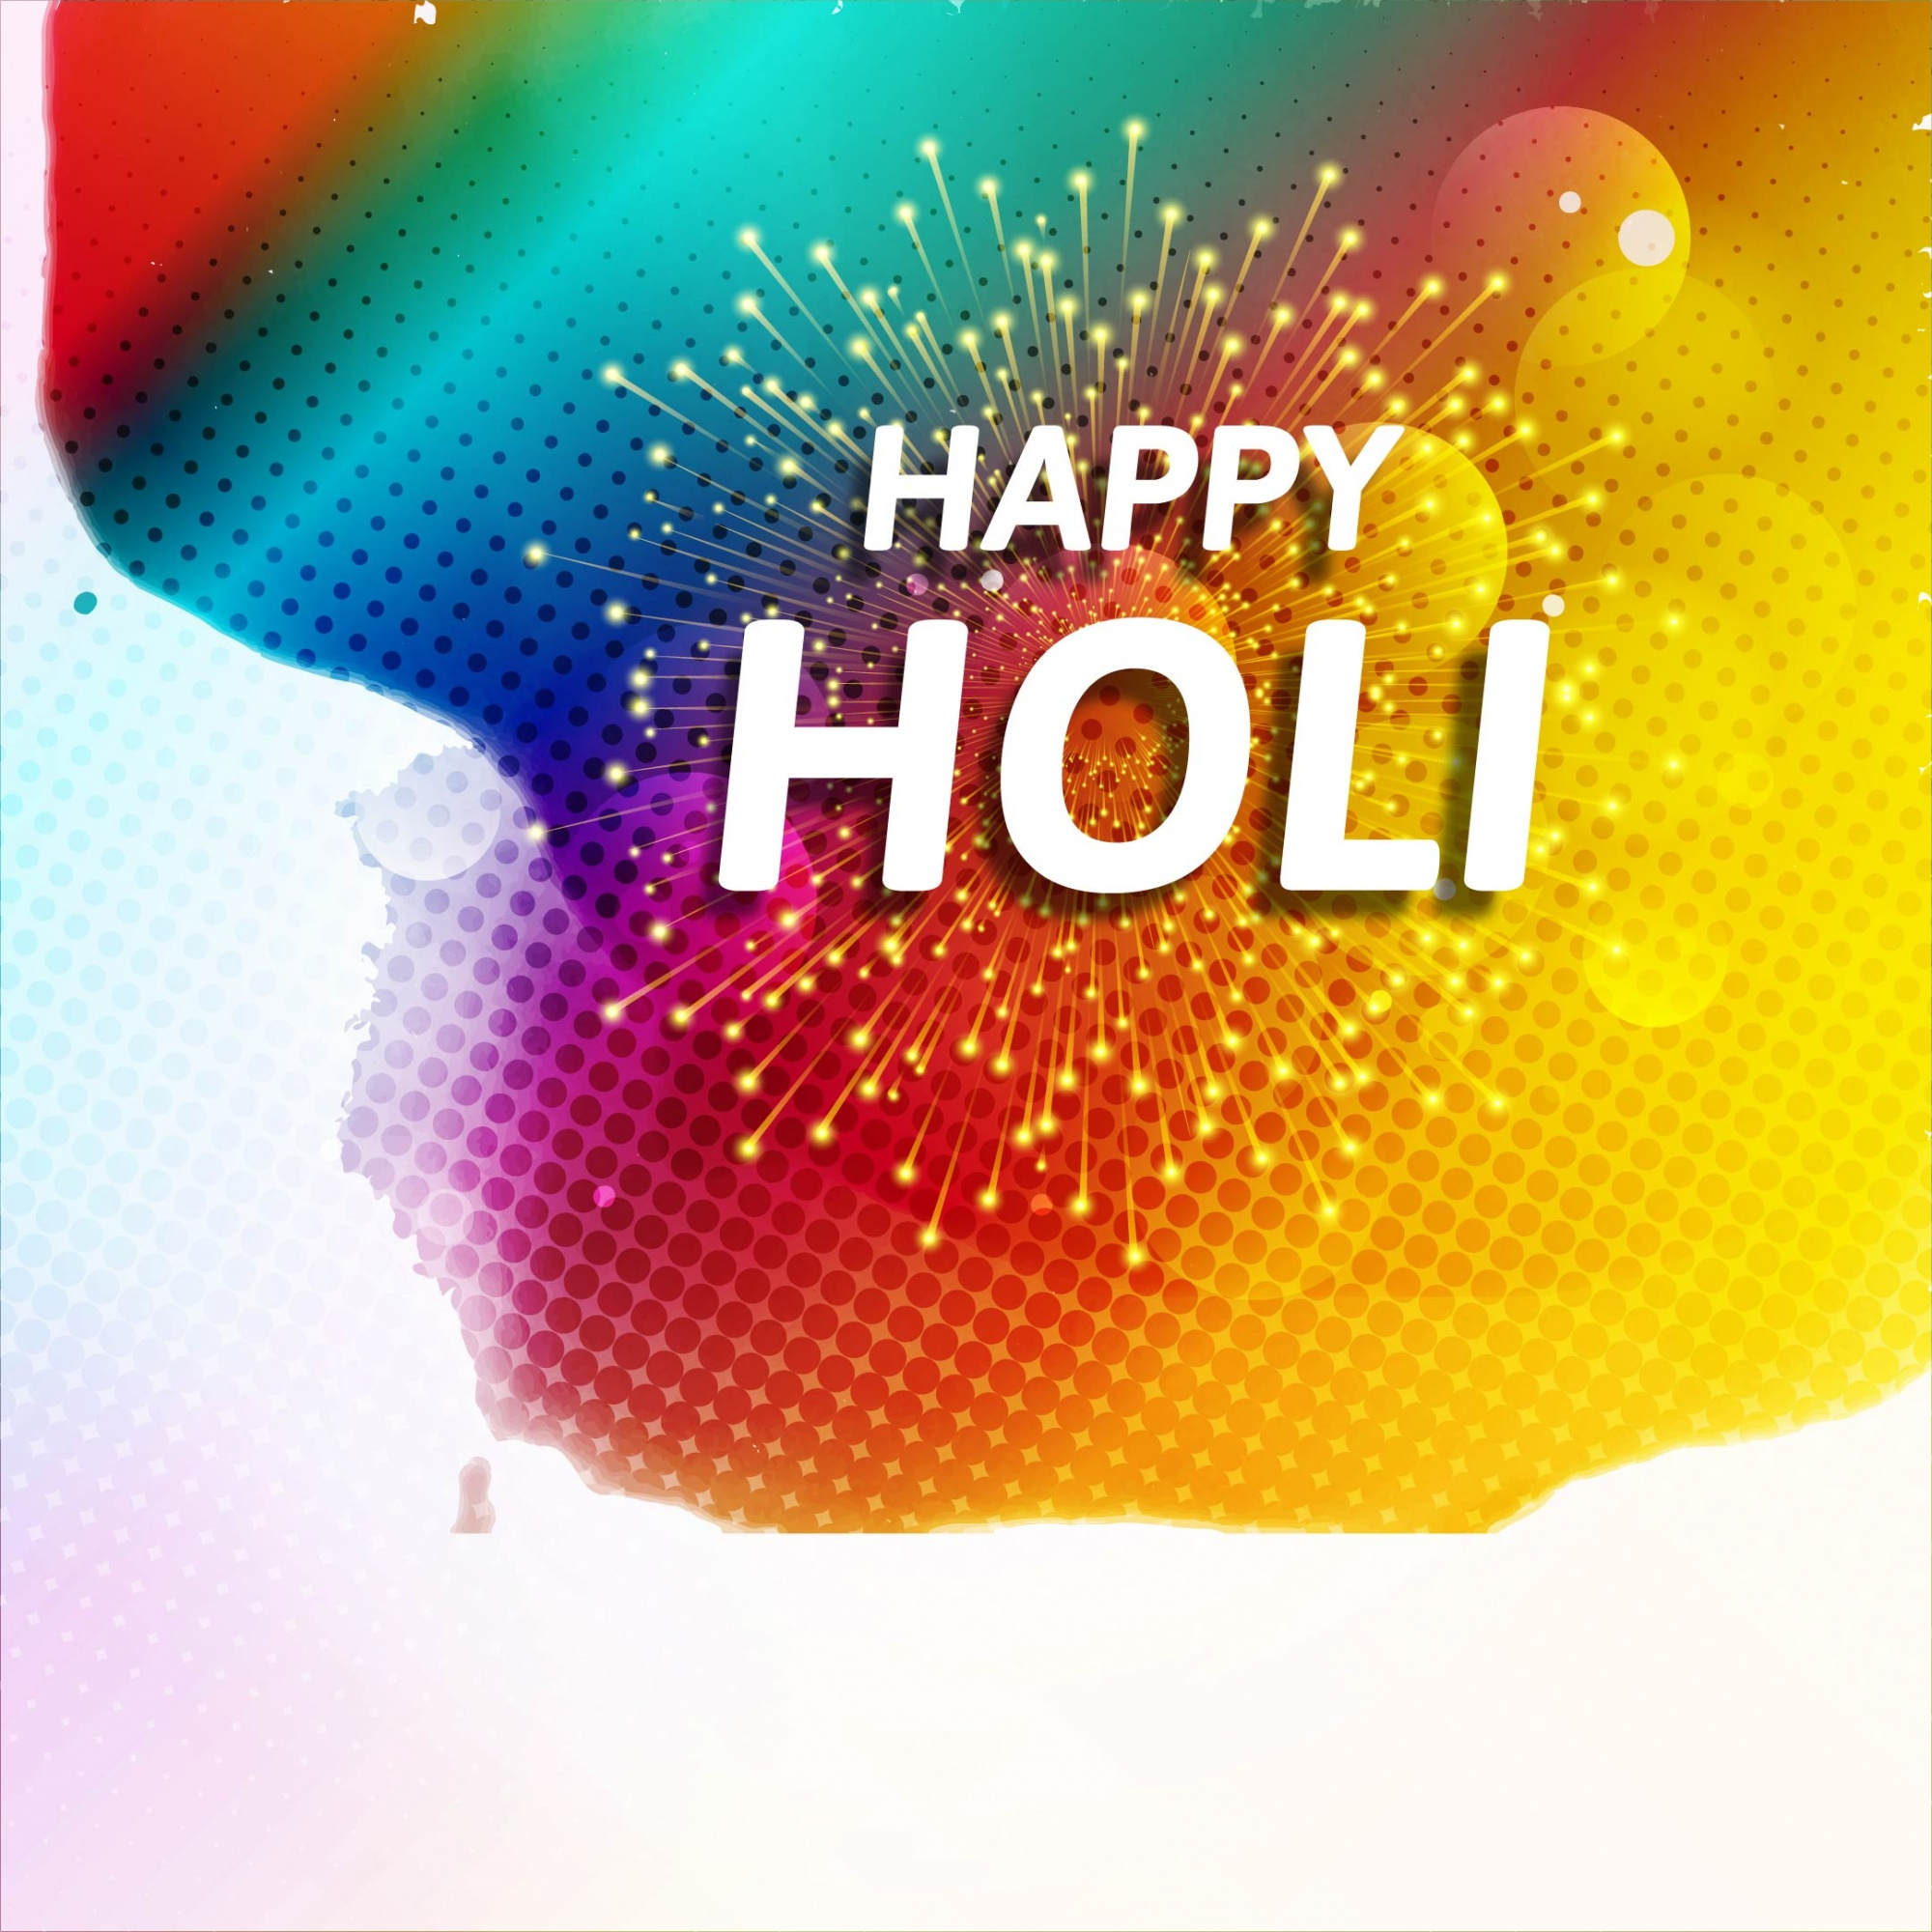 Background with watercolors and fireworks for holi festival